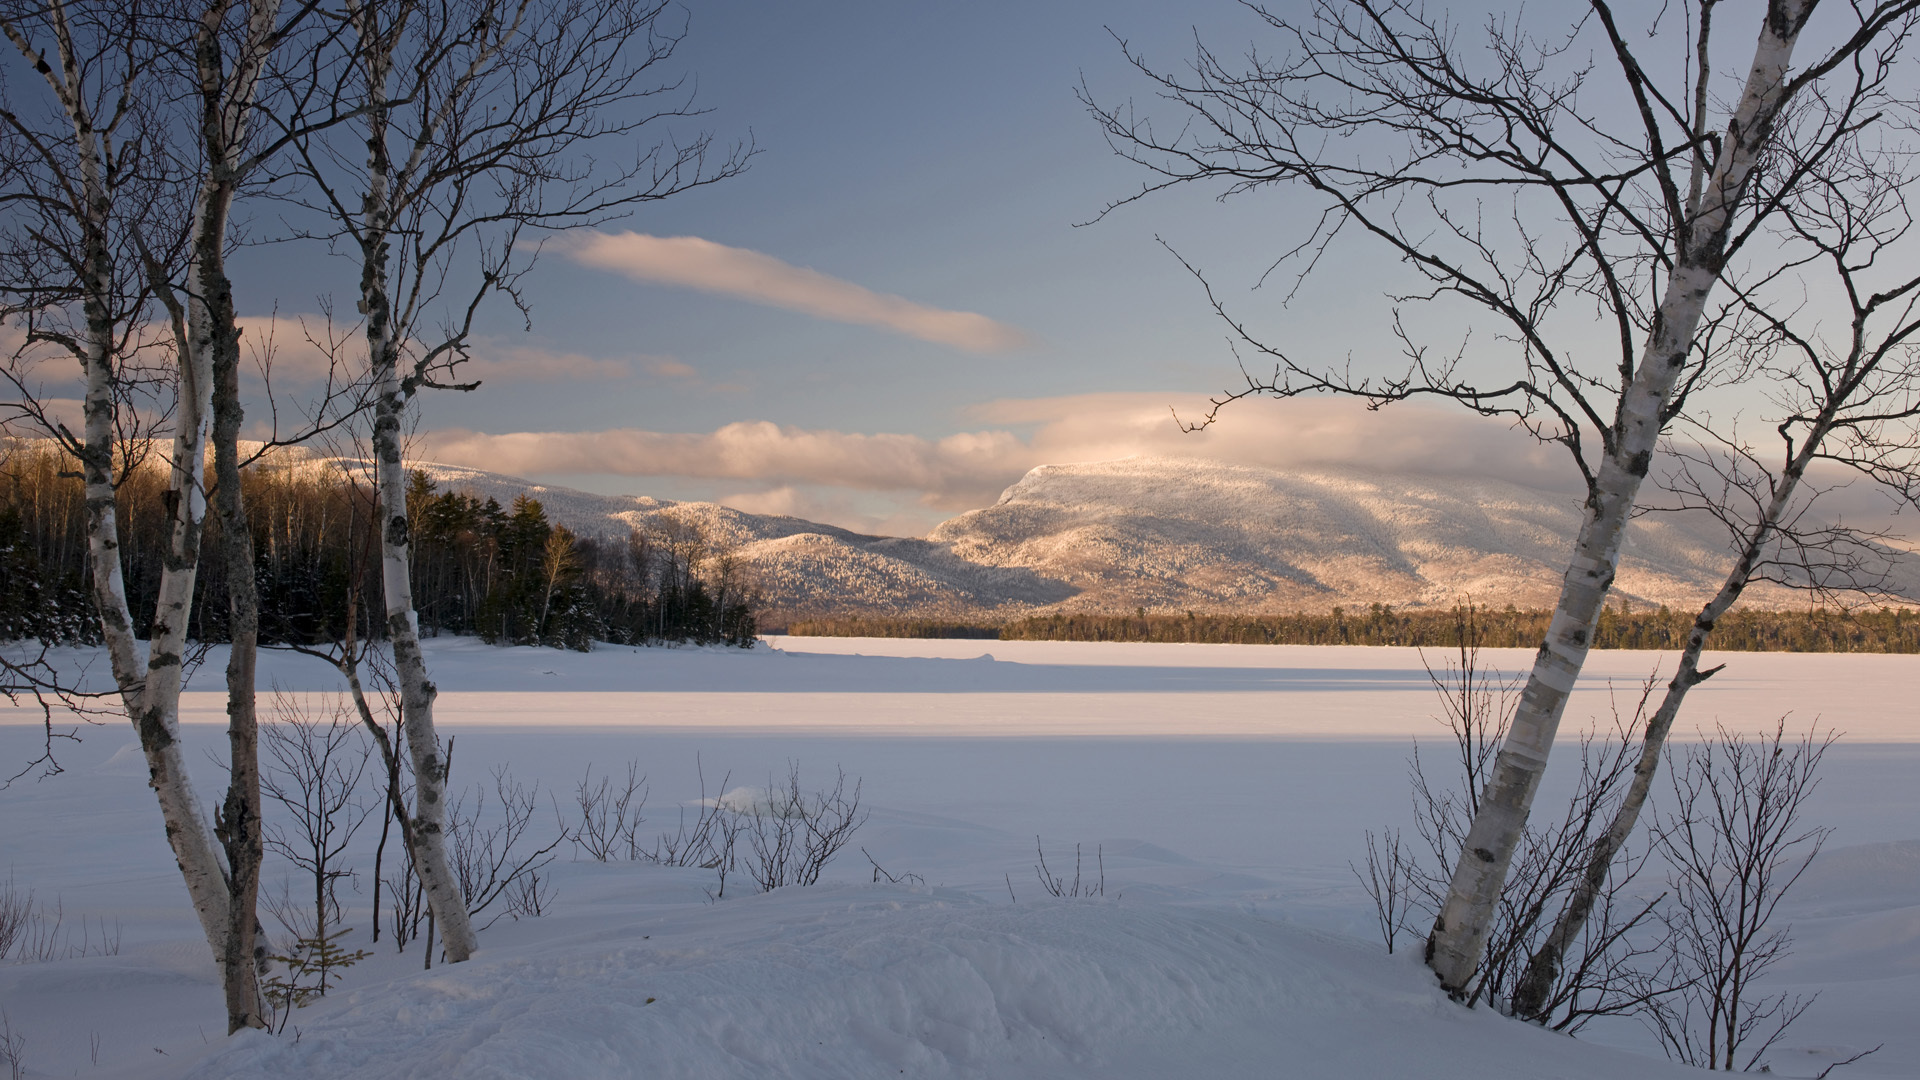 43262 download wallpaper Landscape, Winter screensavers and pictures for free